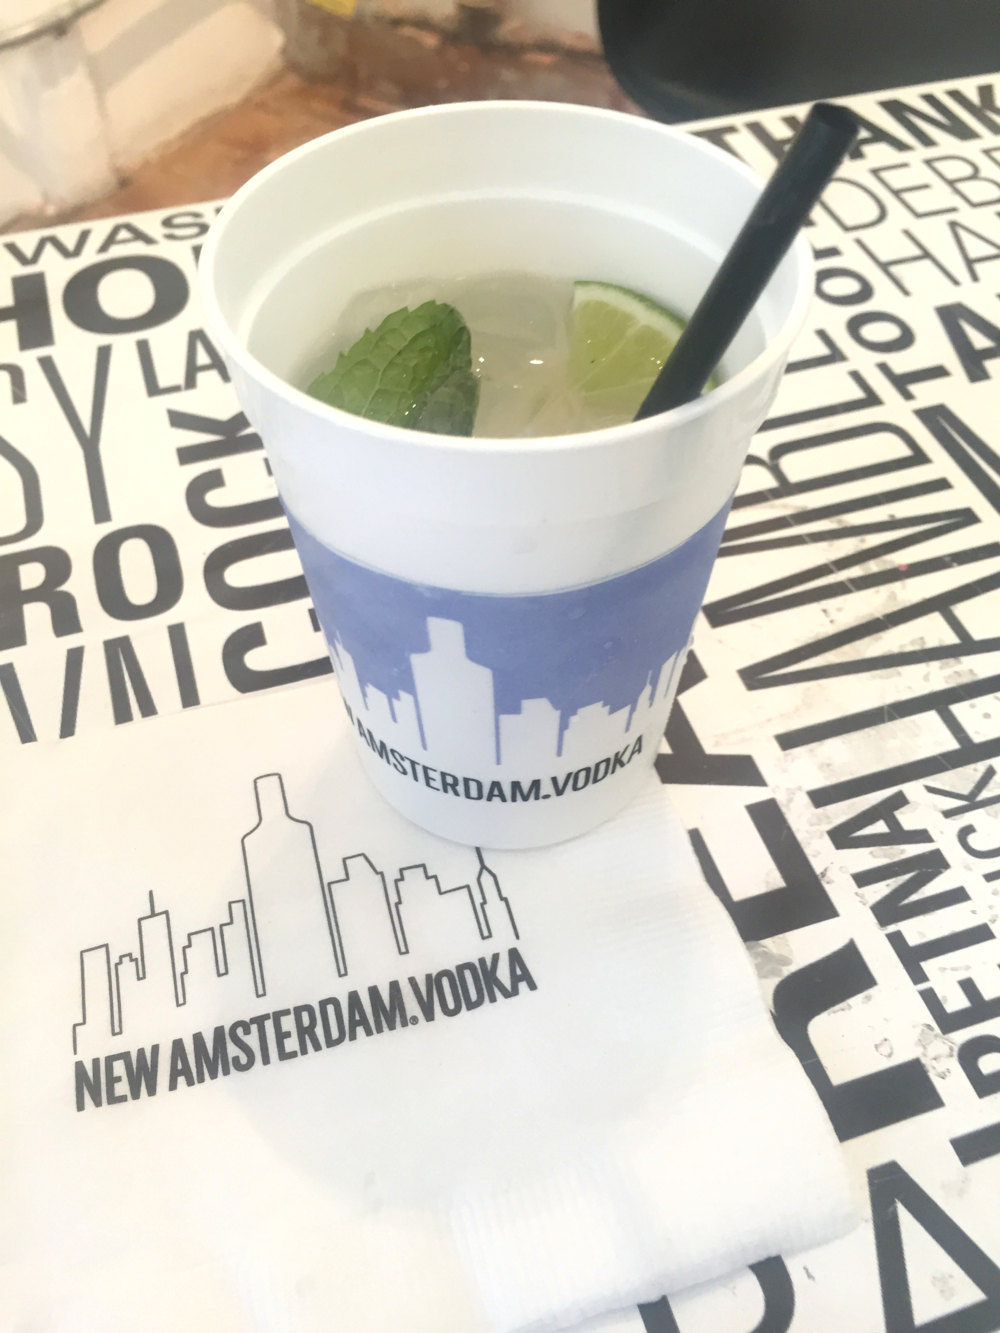 Dam Good Mule at the New Amsterdam Vodka It's Your Town Event